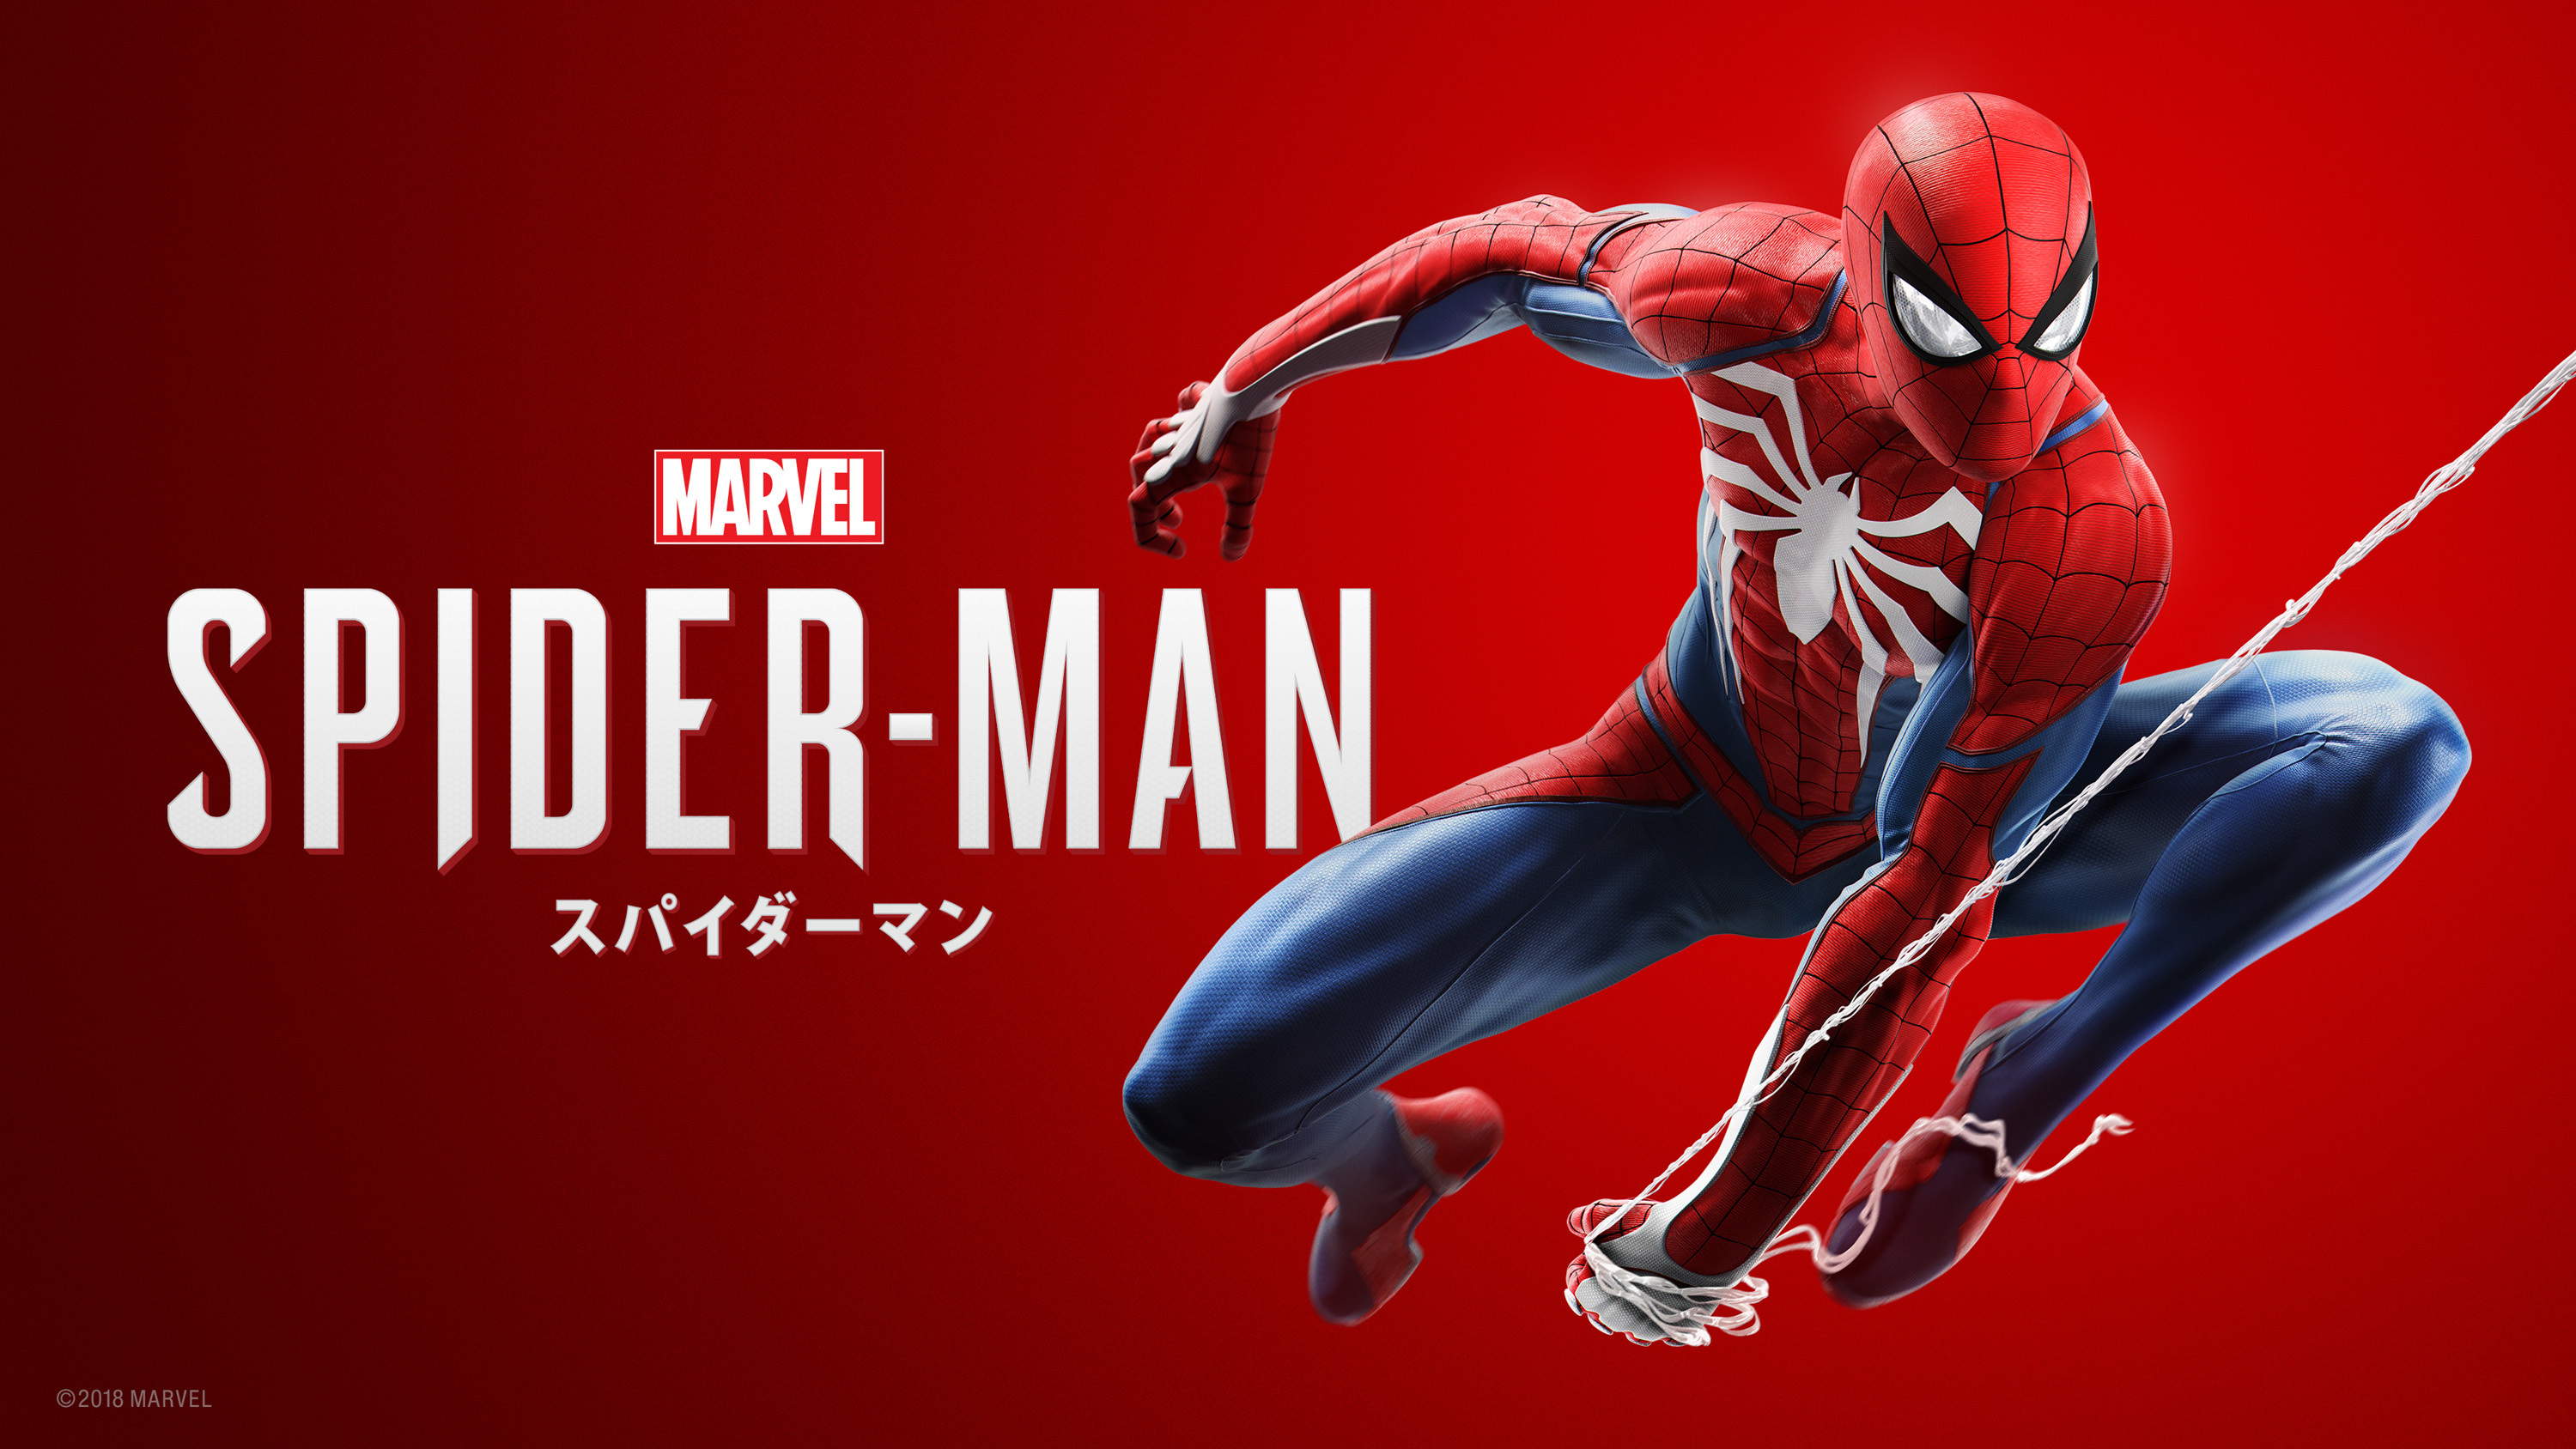 『Marvel's Spider-Man』メインビジュアル (c)2018 MARVEL ©Sony Interactive Entertainment LLC. Developed by Insomniac Games, Inc.